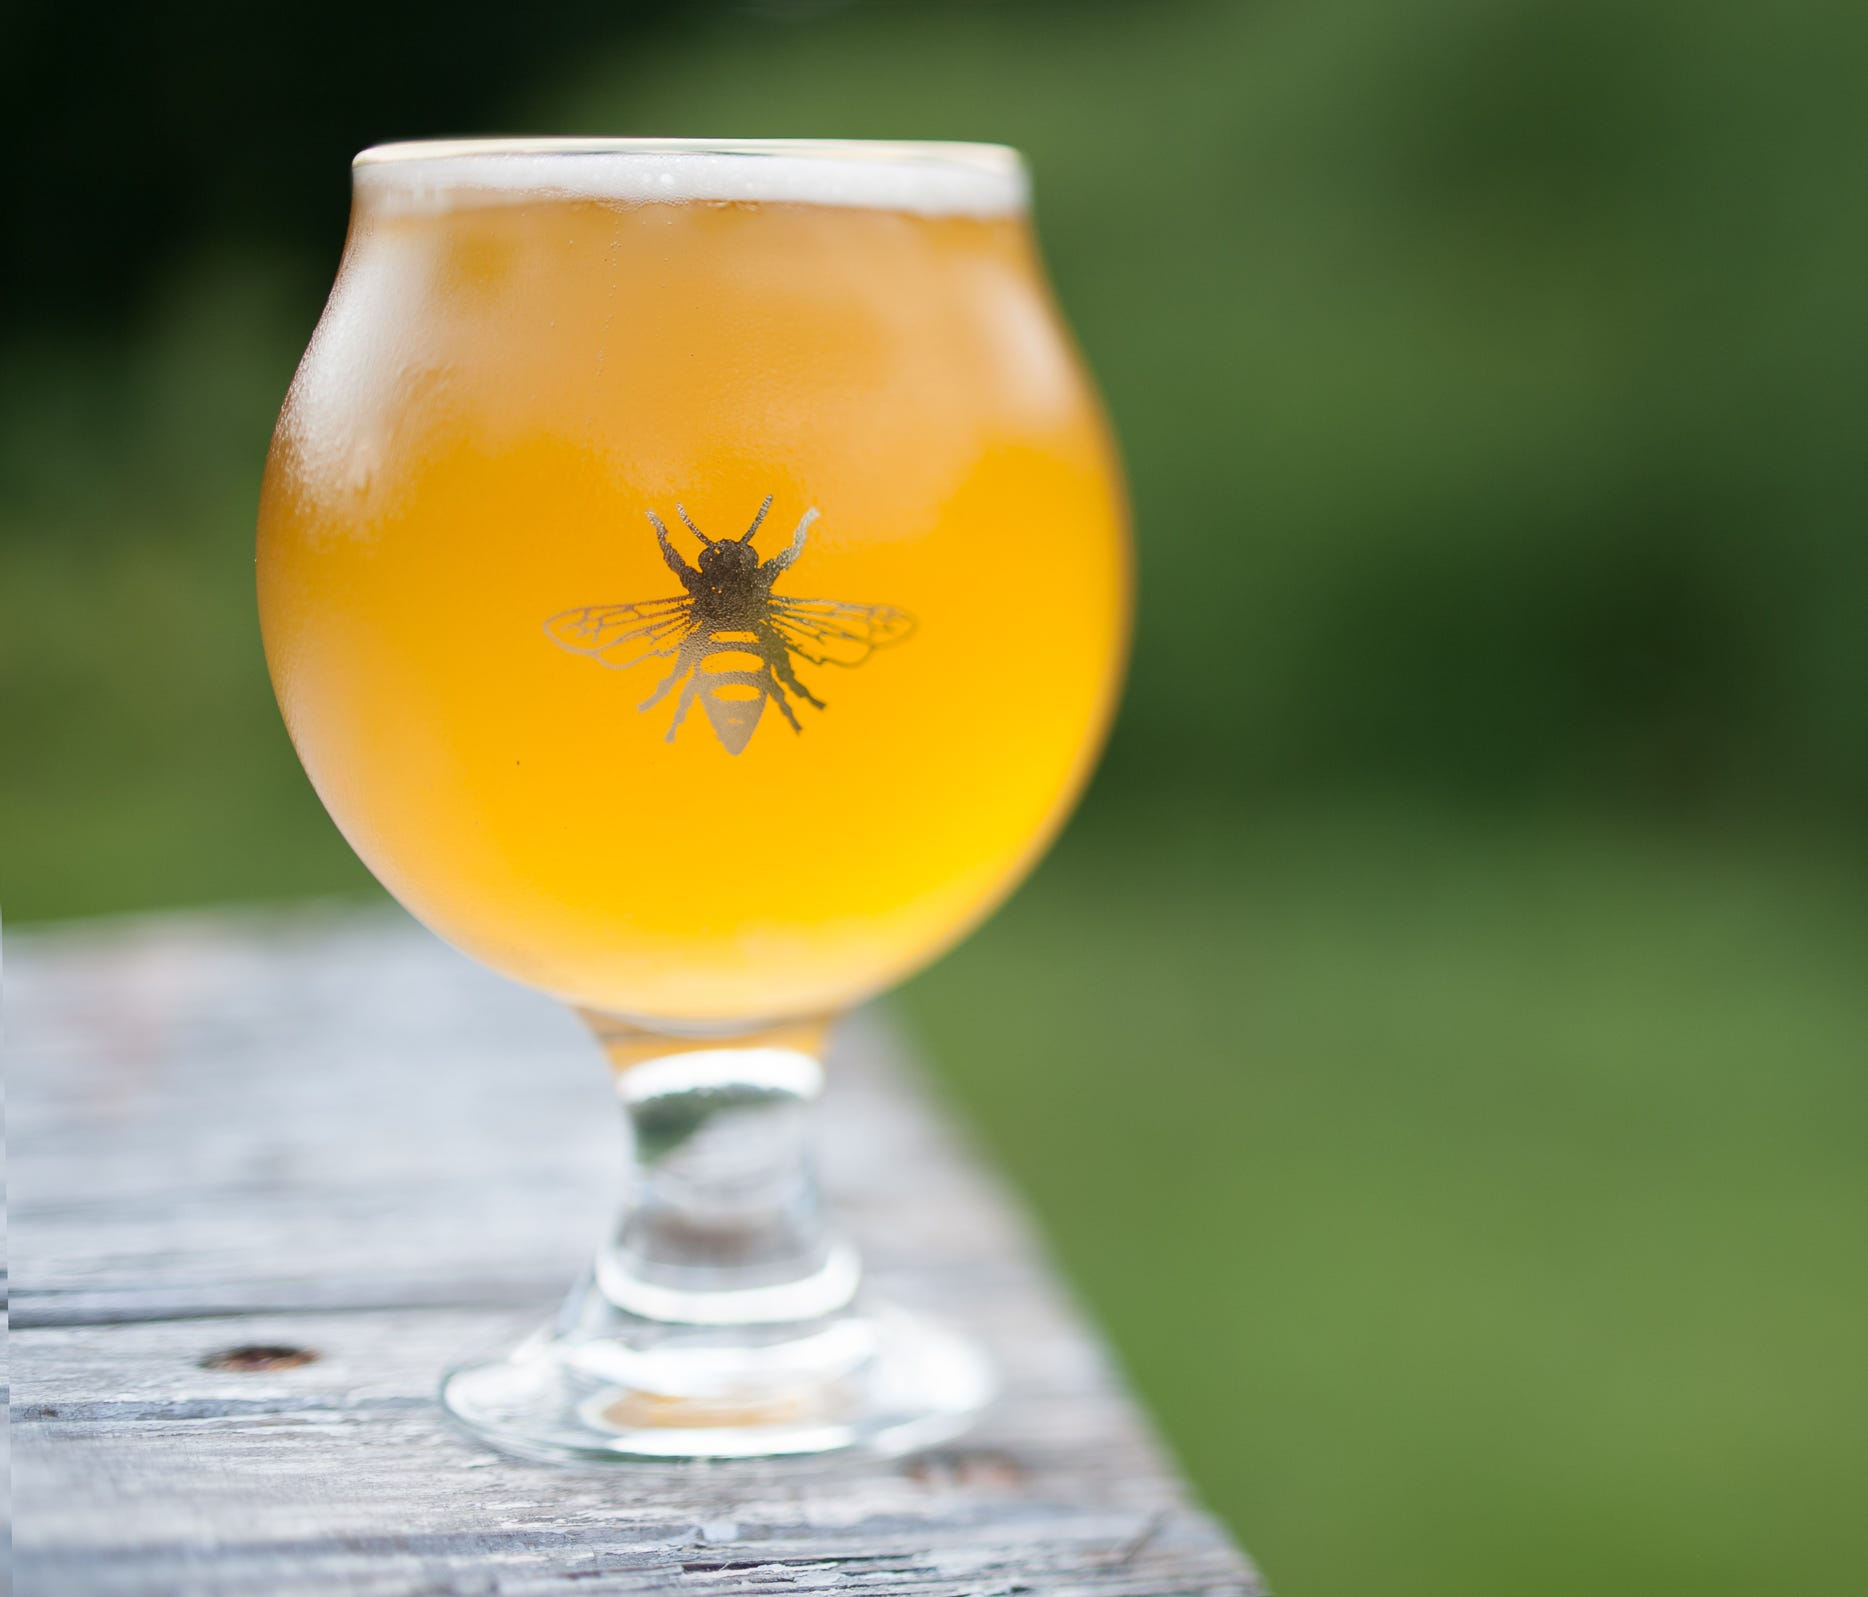 All of Plan Bee Farm Brewery's beers are crafted, in true farmer fashion, exclusively with ingredients grown in New York, including many on the property. Even the yeast is cultivated from the farm's honeycomb hives.